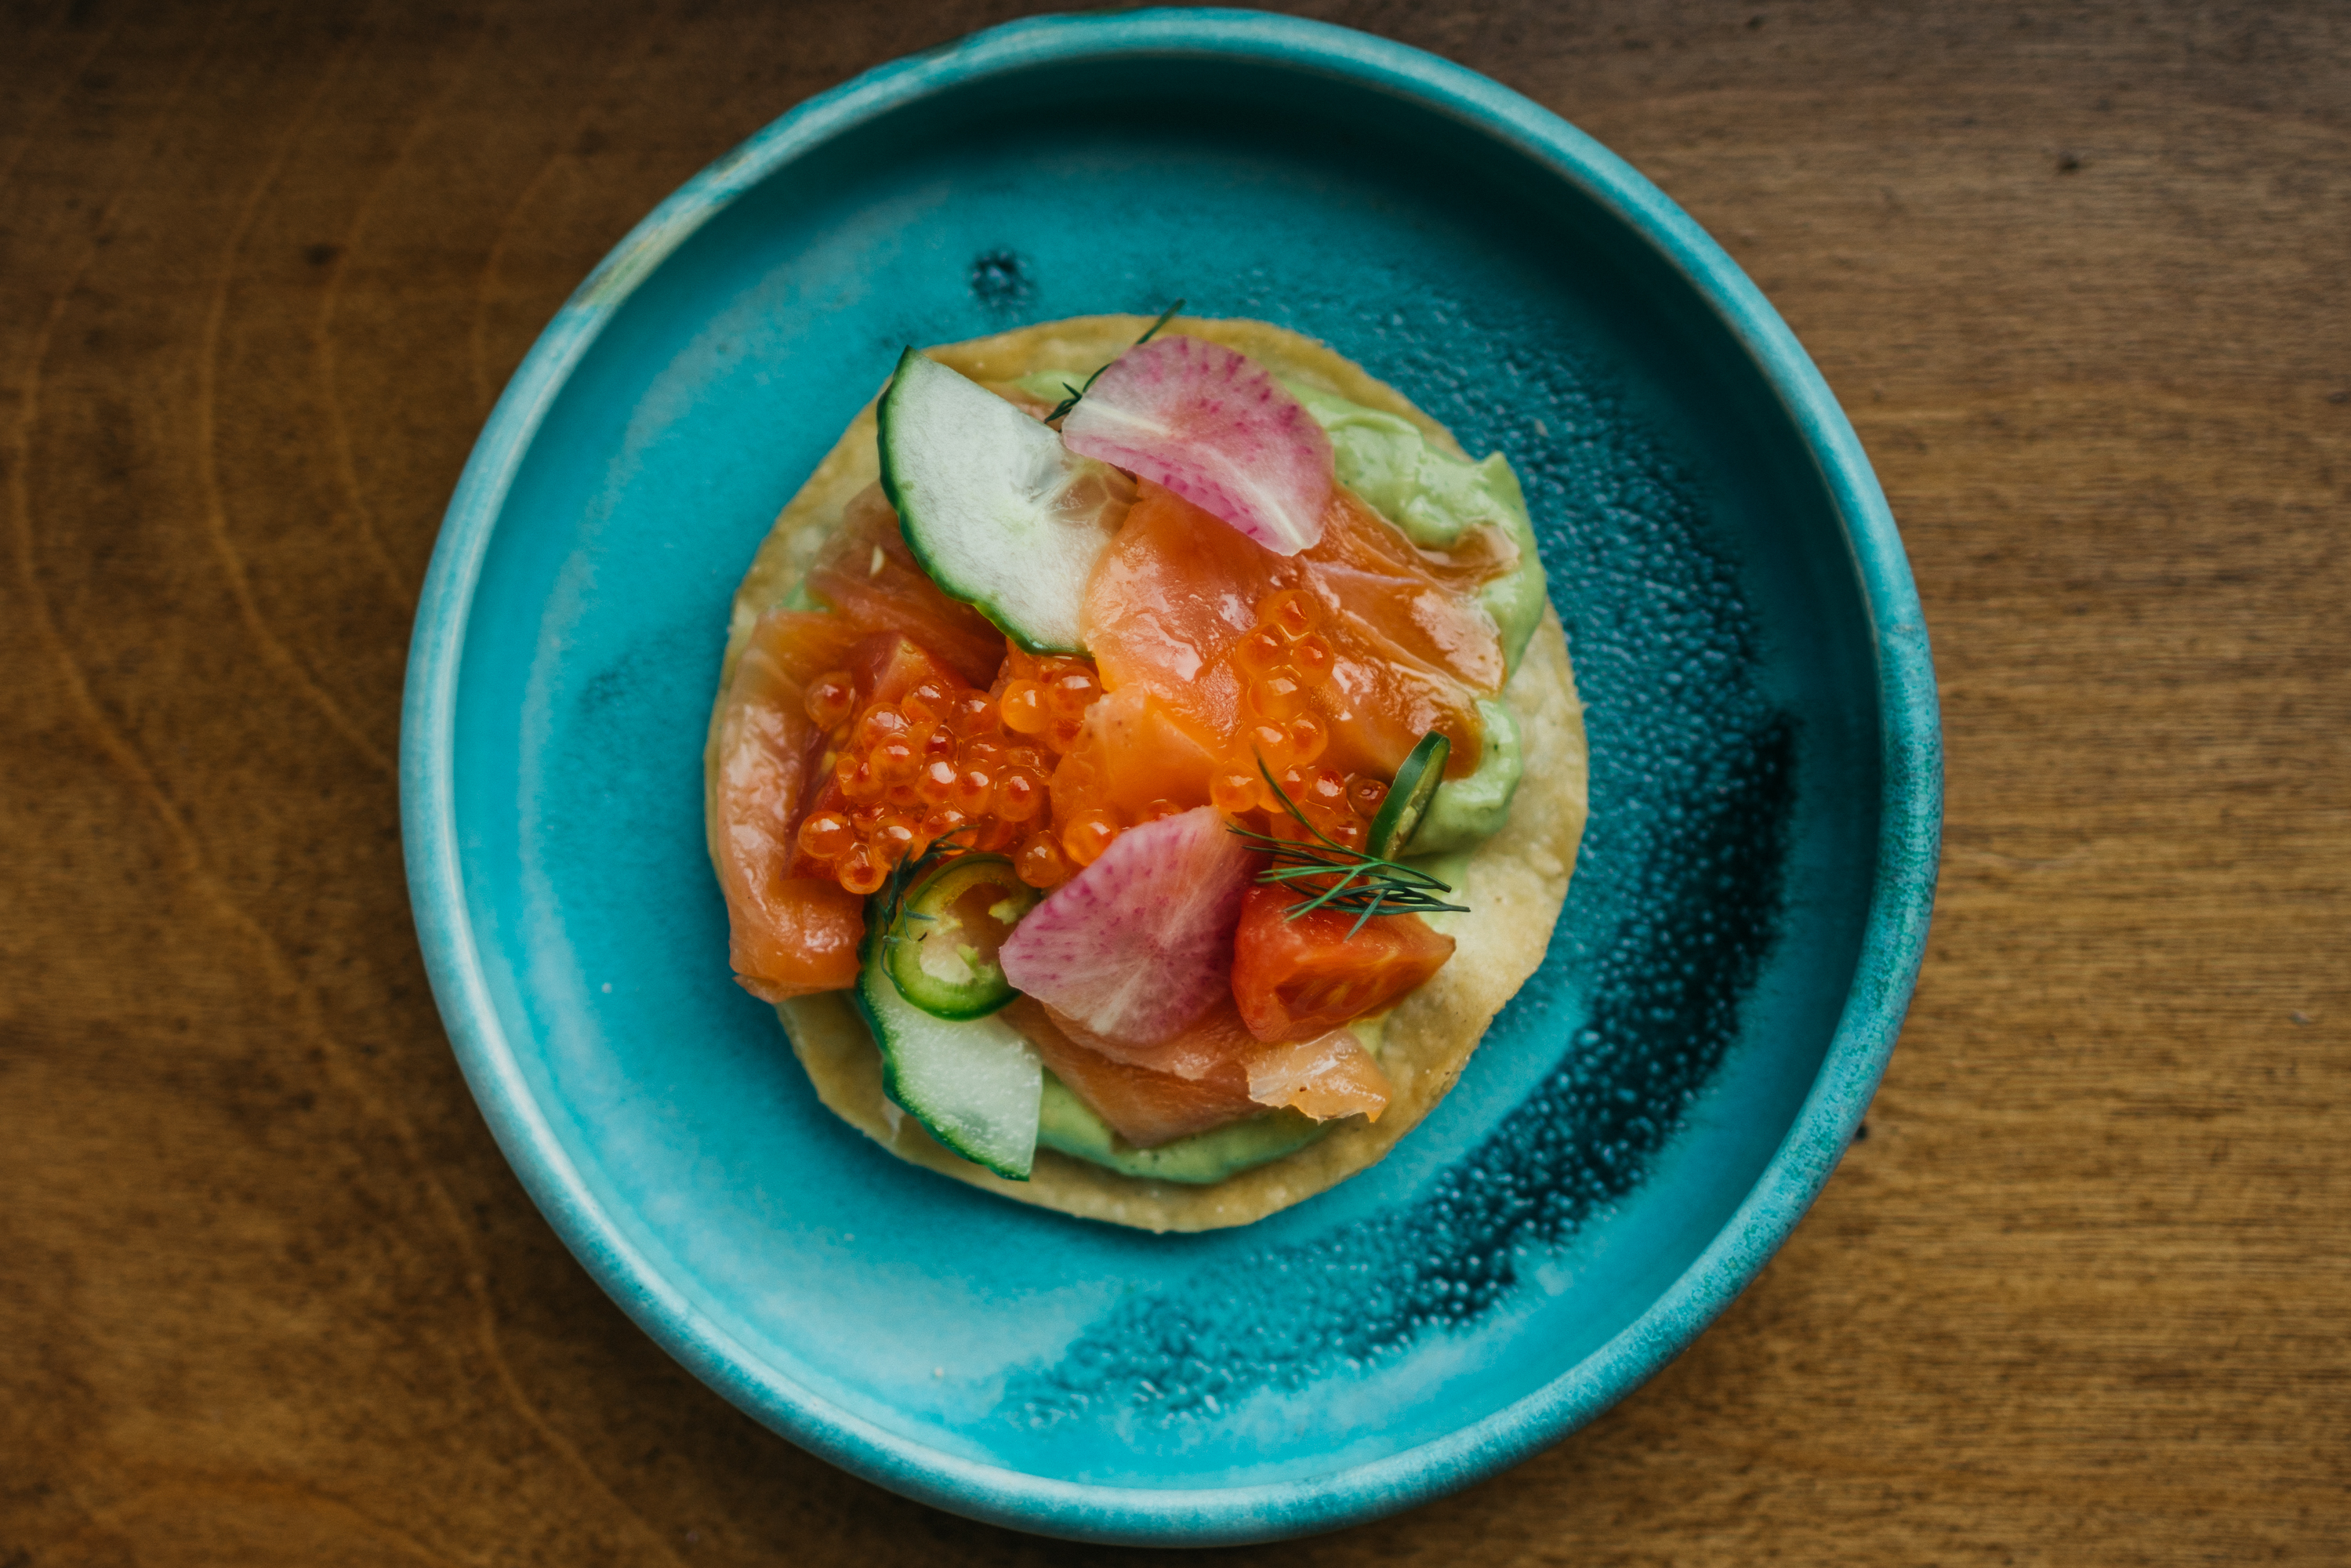 Upstairs, you'll find elegant Latin small plates like this salmon lox tostada at Buena Vida. (Image:Timothy Yantz)